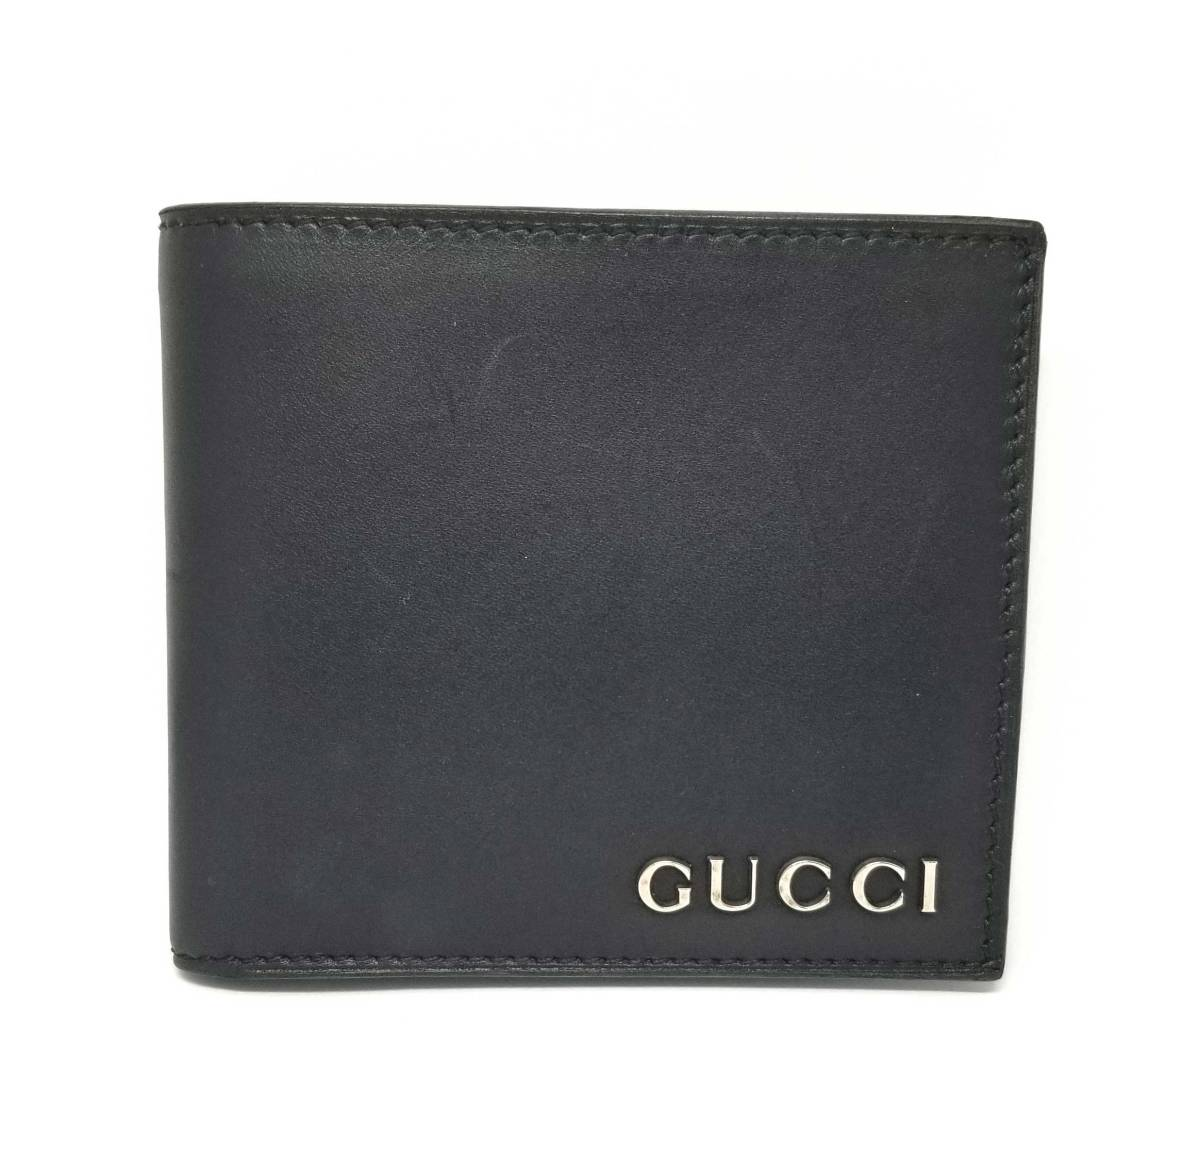 8e2a21f4418c The genuine leather GUCCI compact which there is a Gucci folio wallet men  black black leather ...